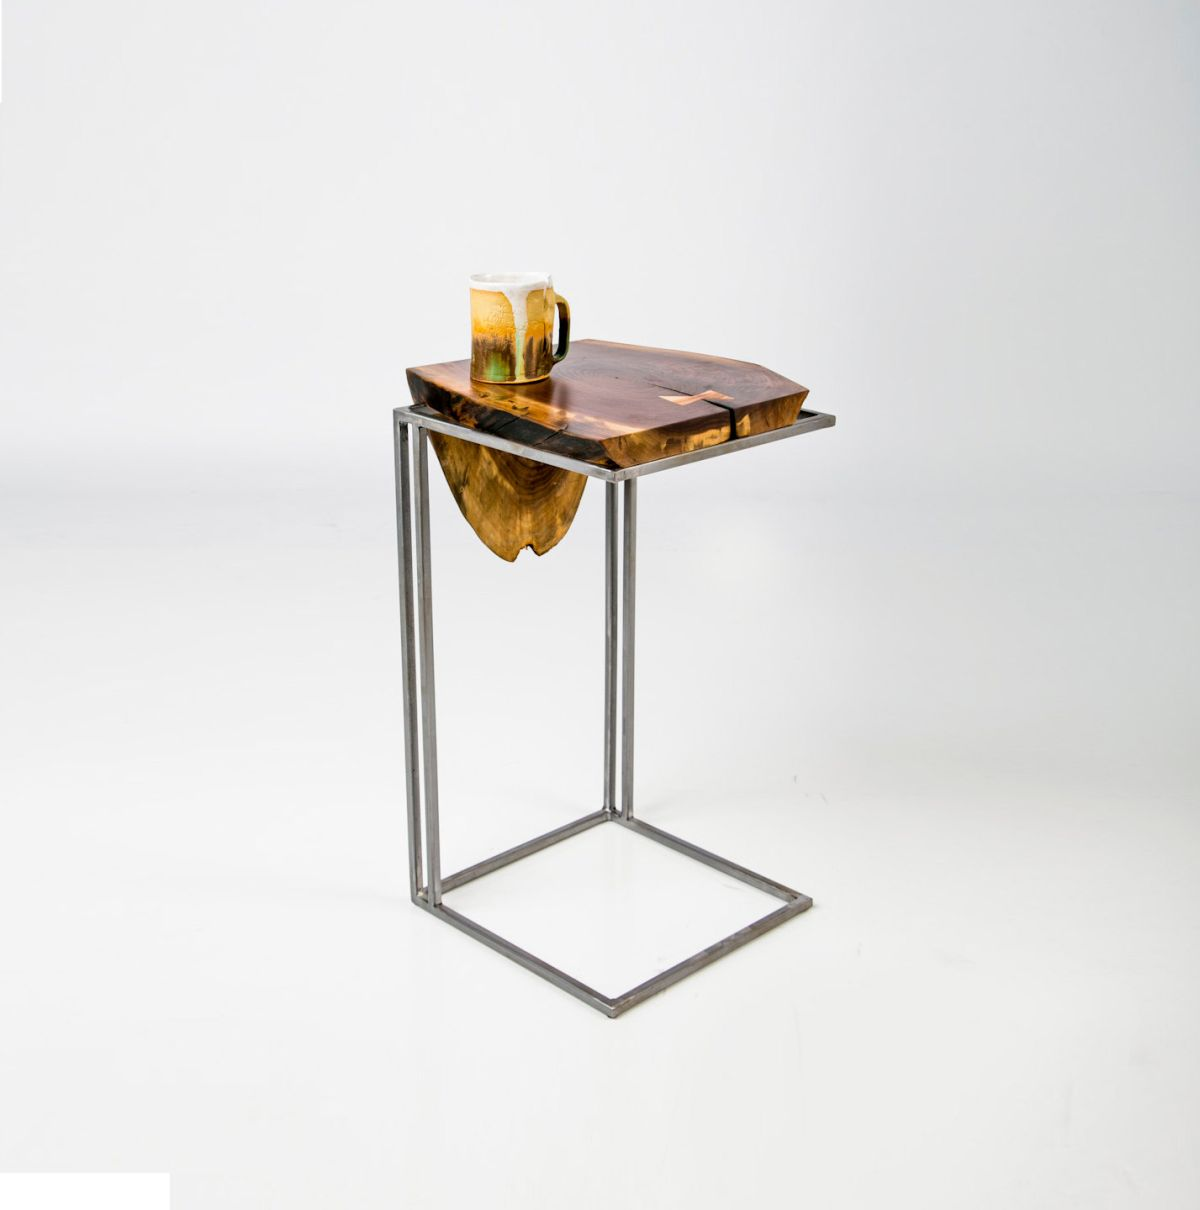 brass table probably super best metal tray end modern tables and fabulous ways use them solid black walnut rfid gun safe lazy boy office chairs triangle shaped side buffet